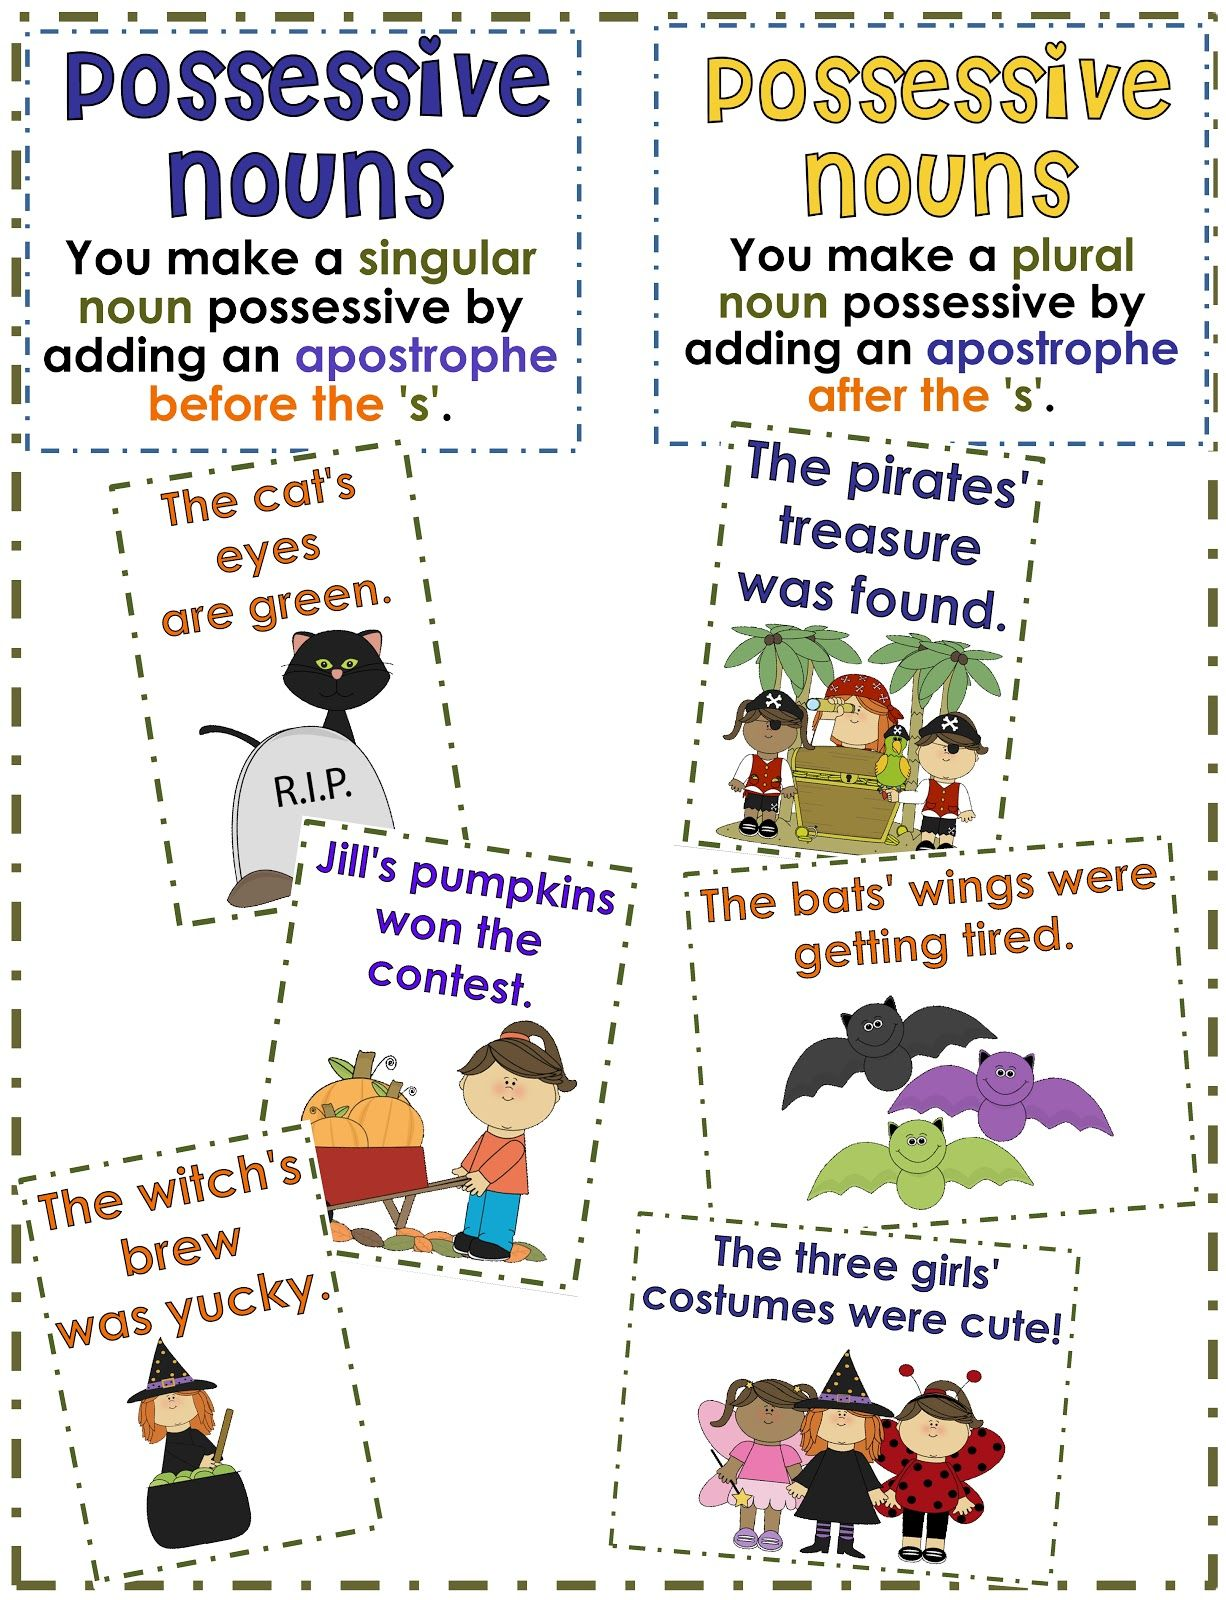 C2 Week 18 Possessive Nouns 2nd Grade Smarty Arties Taught